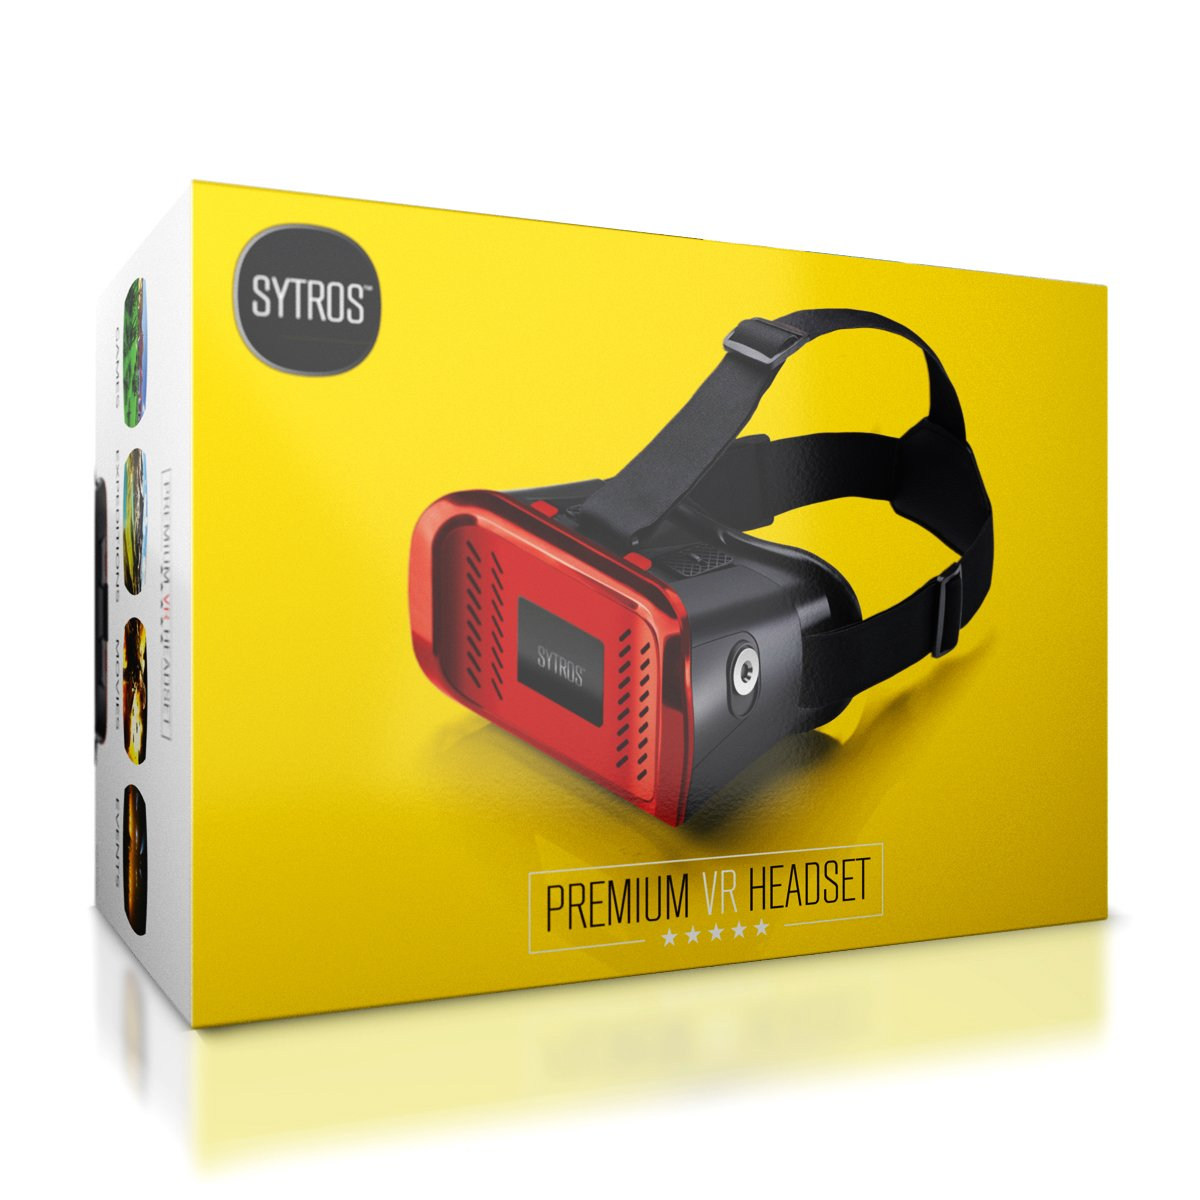 Premium Virtual Reality VR Headset w/ Magnetic Button Trigger by Sytros, Lightweight VR Goggles Glasses for Apple iPhone Android & Samsung Smartphones